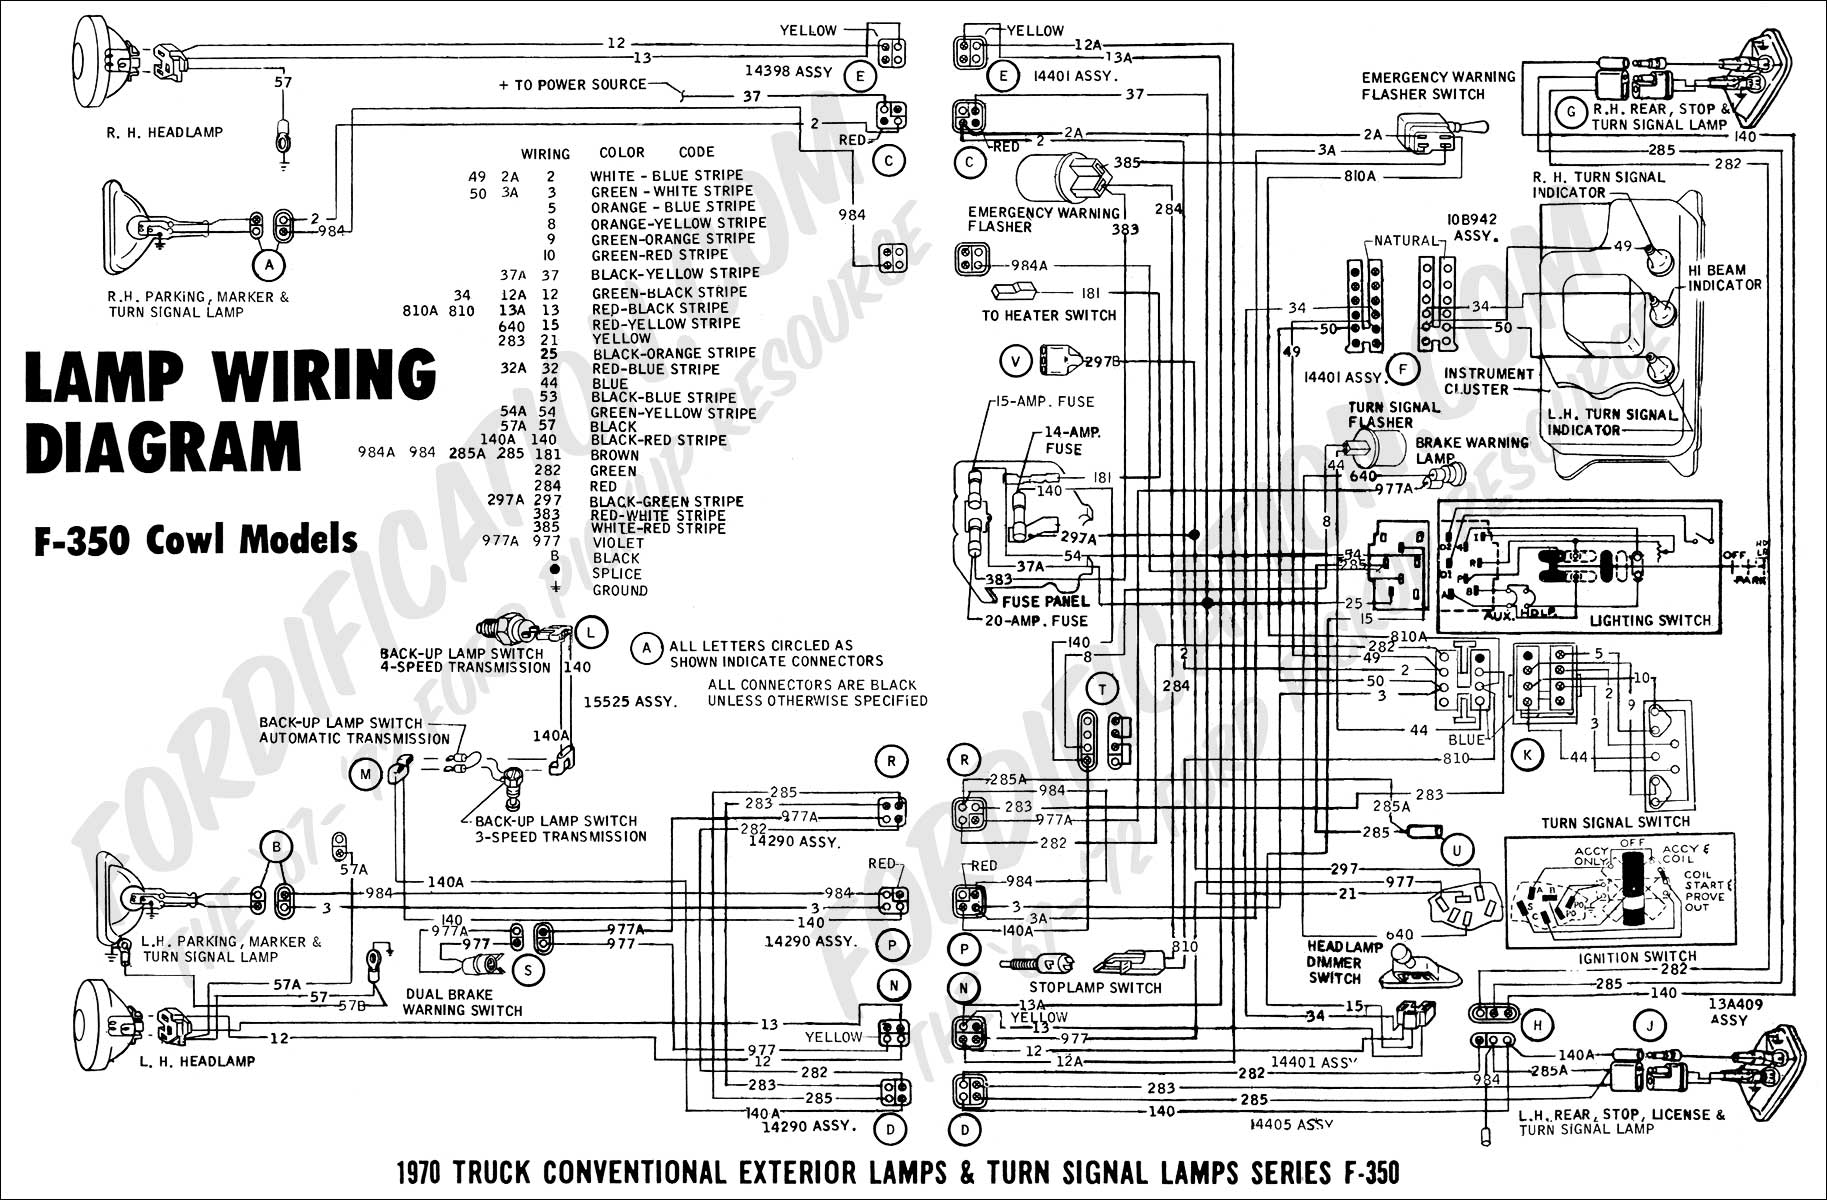 Ford E 250 Brake Switch Wiring Diagram Diagrams Starter On 1980 Cj5 Turn Signal 99 Explorer Fuel Pump Simple 93 Rh Smallboxdesigns Co 150